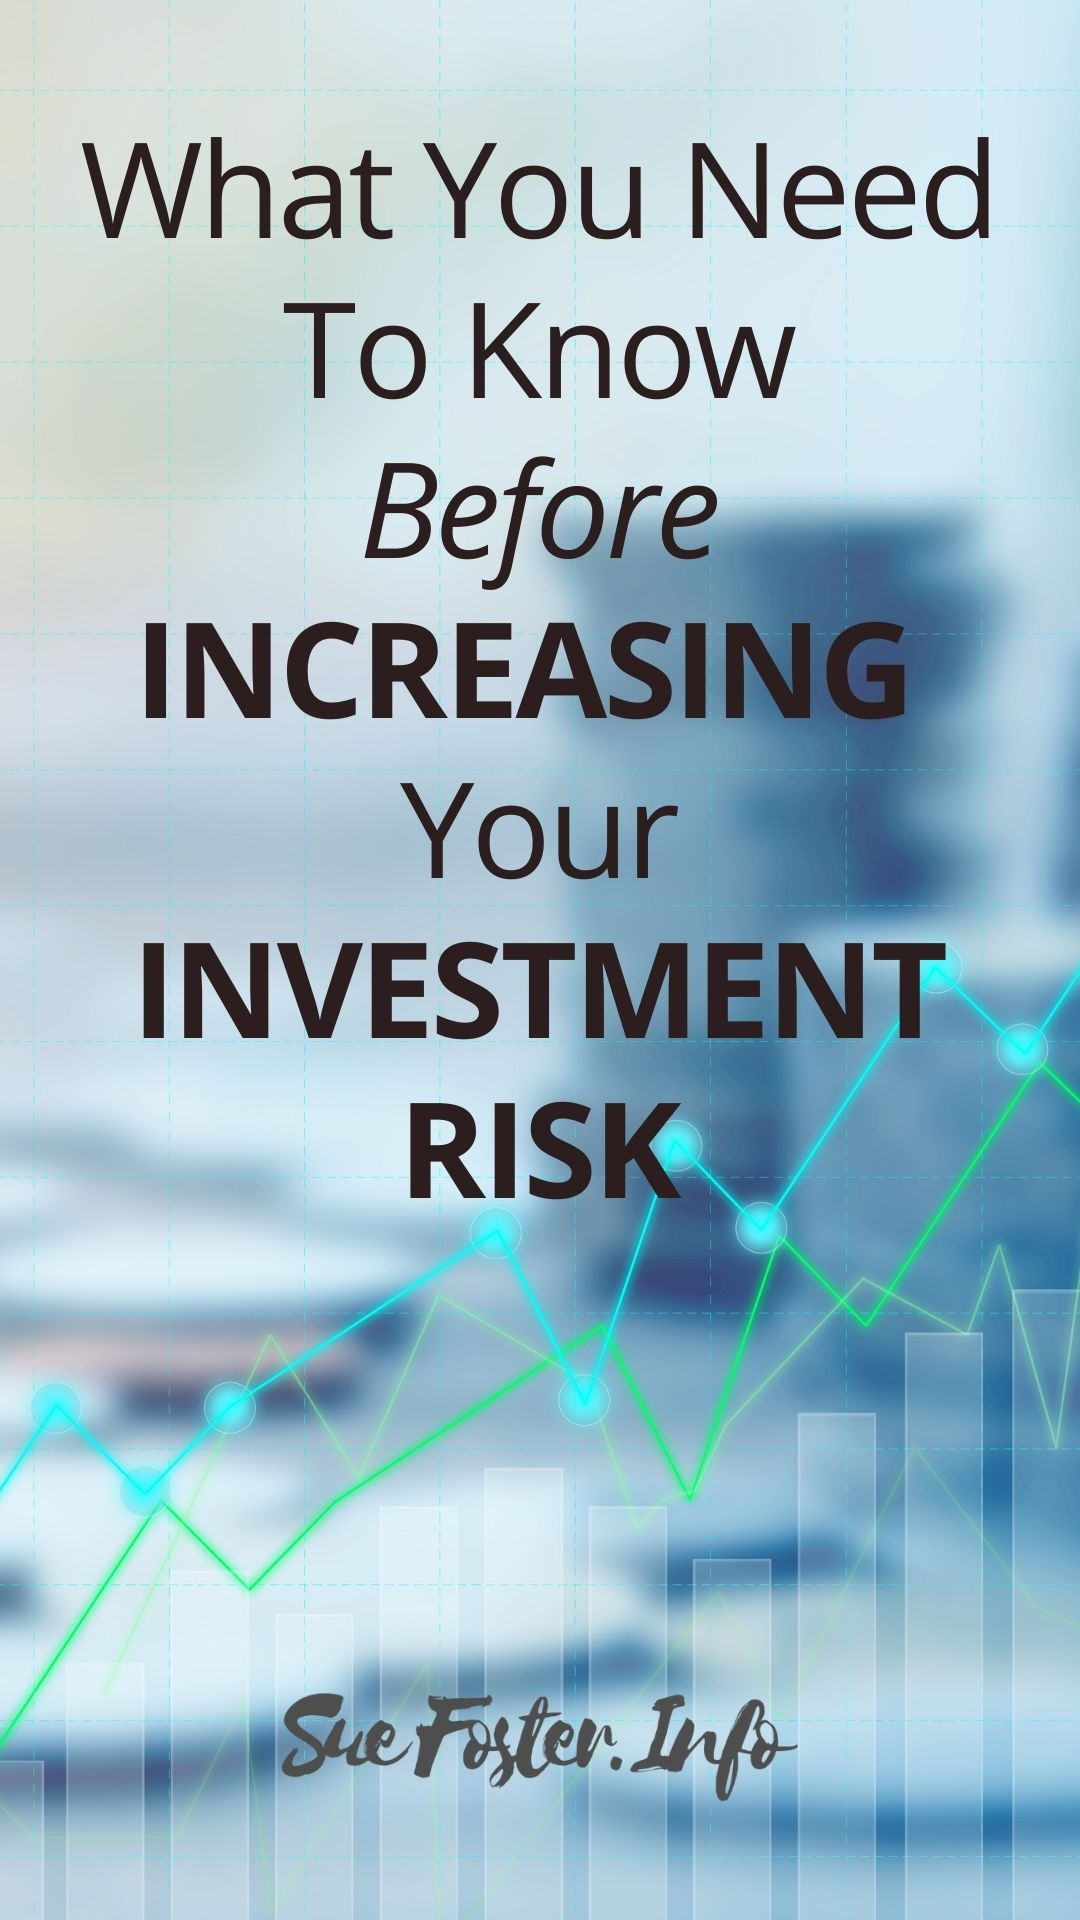 Whether you are an experienced investor or not, it's critical to assess your own risk tolerance before putting your money anywhere.